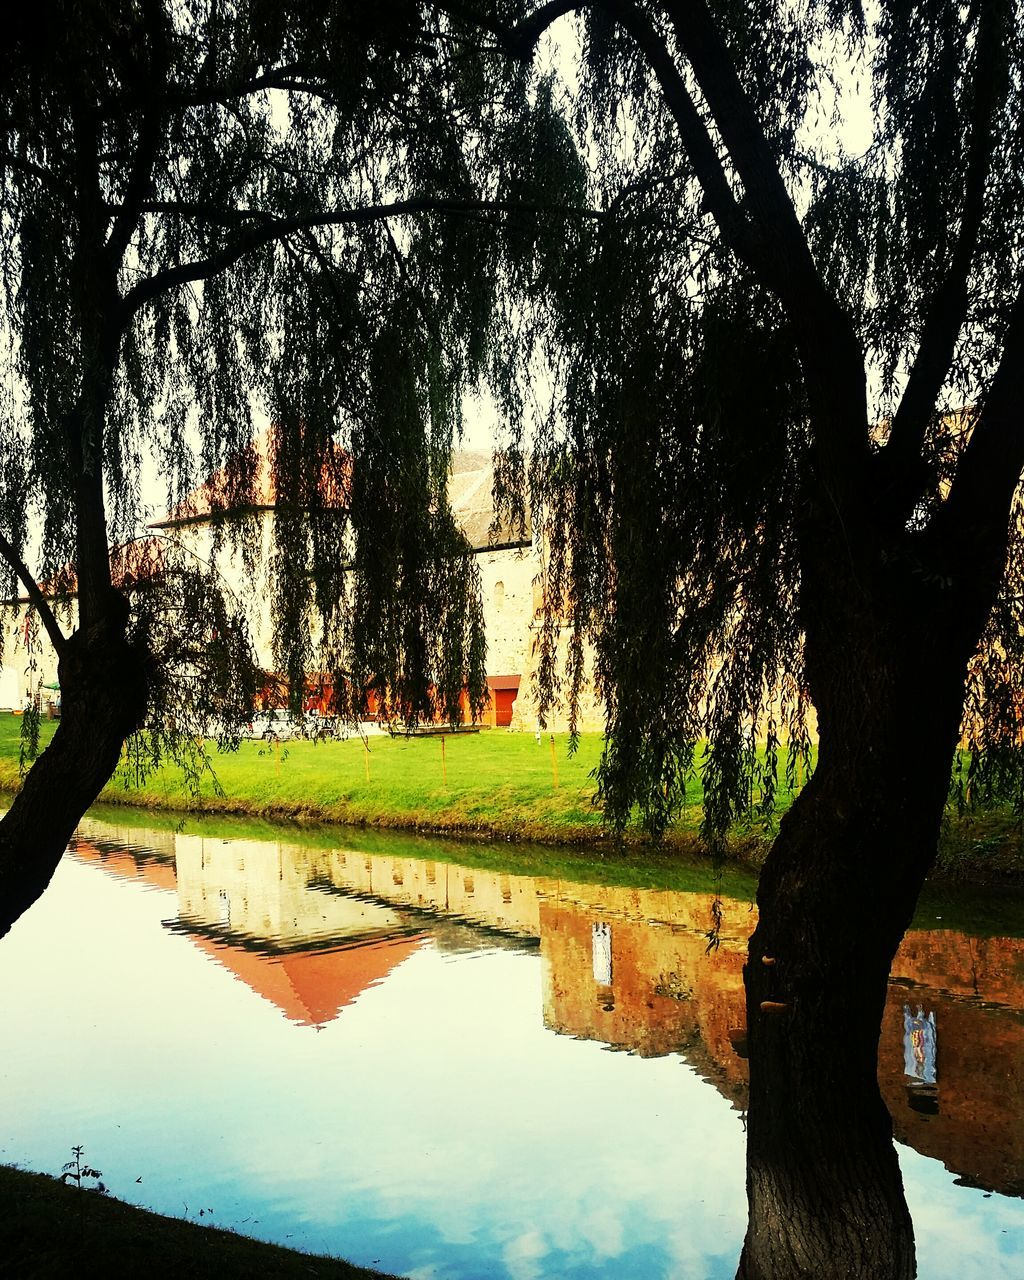 tree, reflection, water, nature, tranquil scene, beauty in nature, tranquility, scenics, growth, outdoors, no people, day, branch, tree trunk, sky, grass